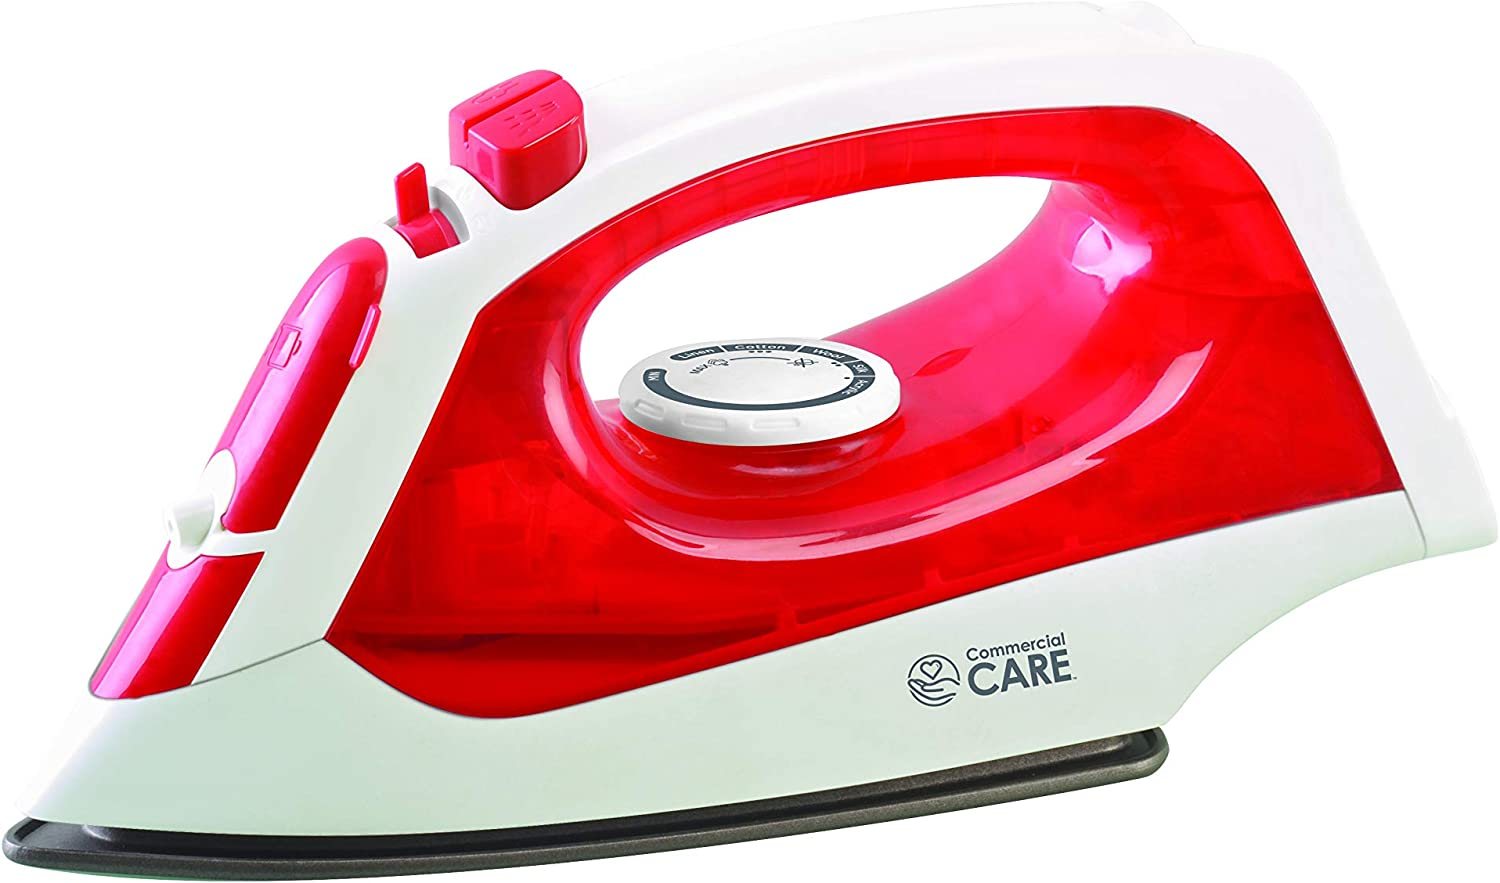 Commercial Care 1200 Watts Steam Iron, Red